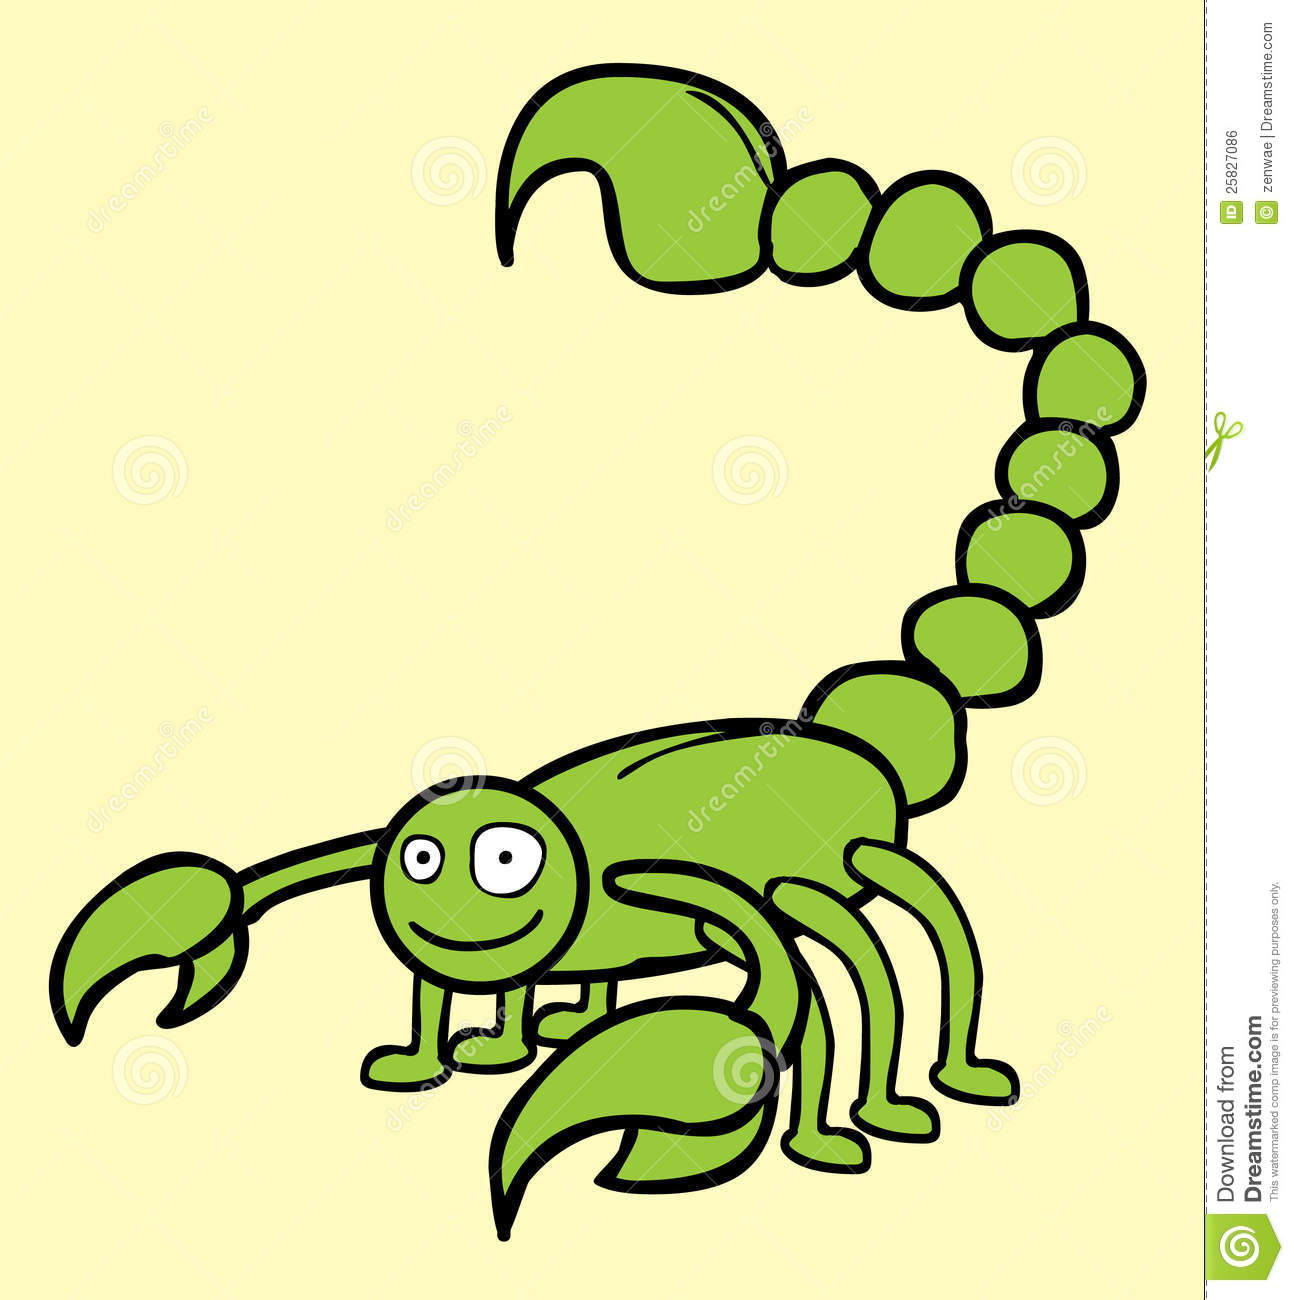 Happy Scorpion Royalty Free Stock Image - Image: 25827086